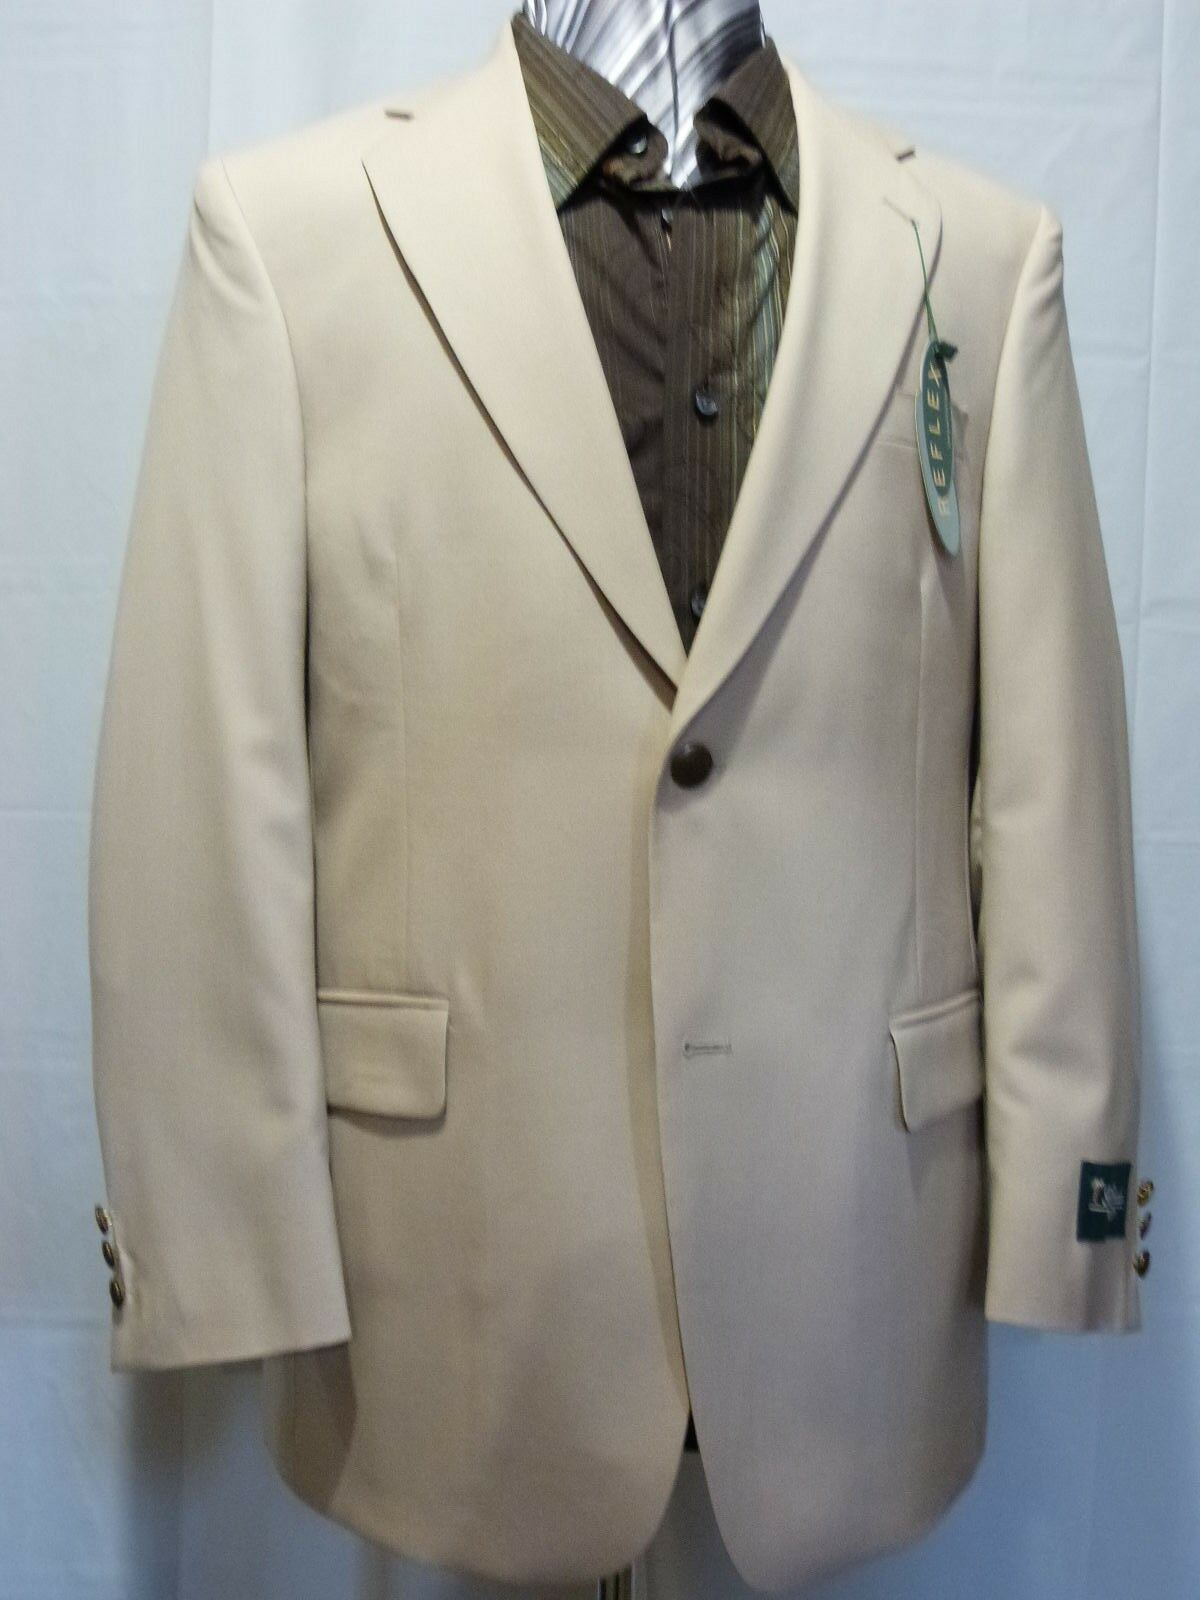 Palm Beach, Two Button Sport Coat, 100% Wool, Beige, NWT